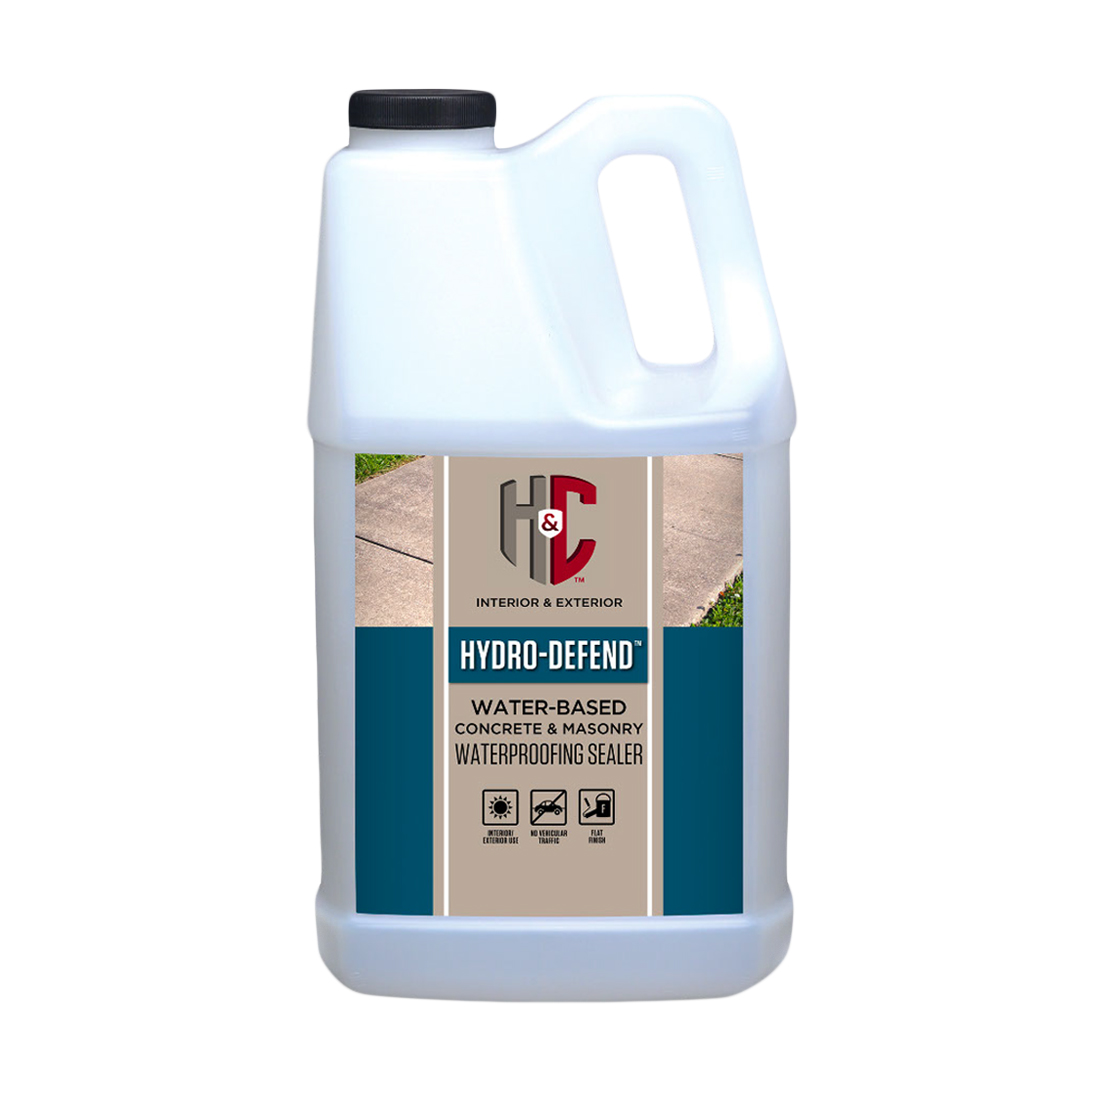 фото Гидрофобизатор sherwin-williams hydro-defend water-based concrete masonry waterproofing sealer 3,8 л